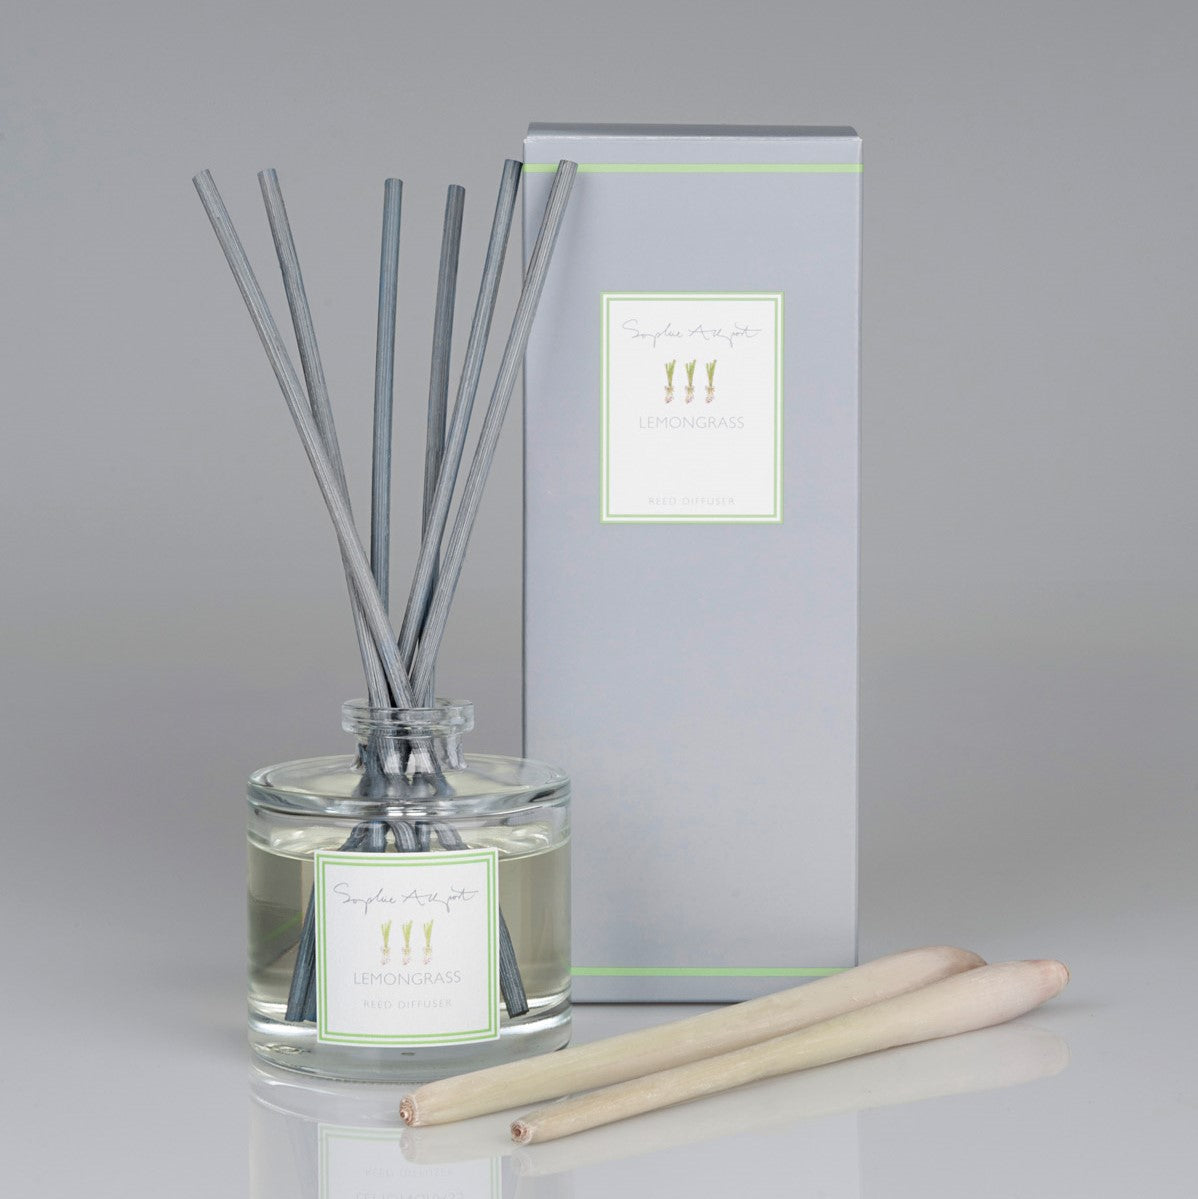 Lemongrass Scented Reed Diffuser